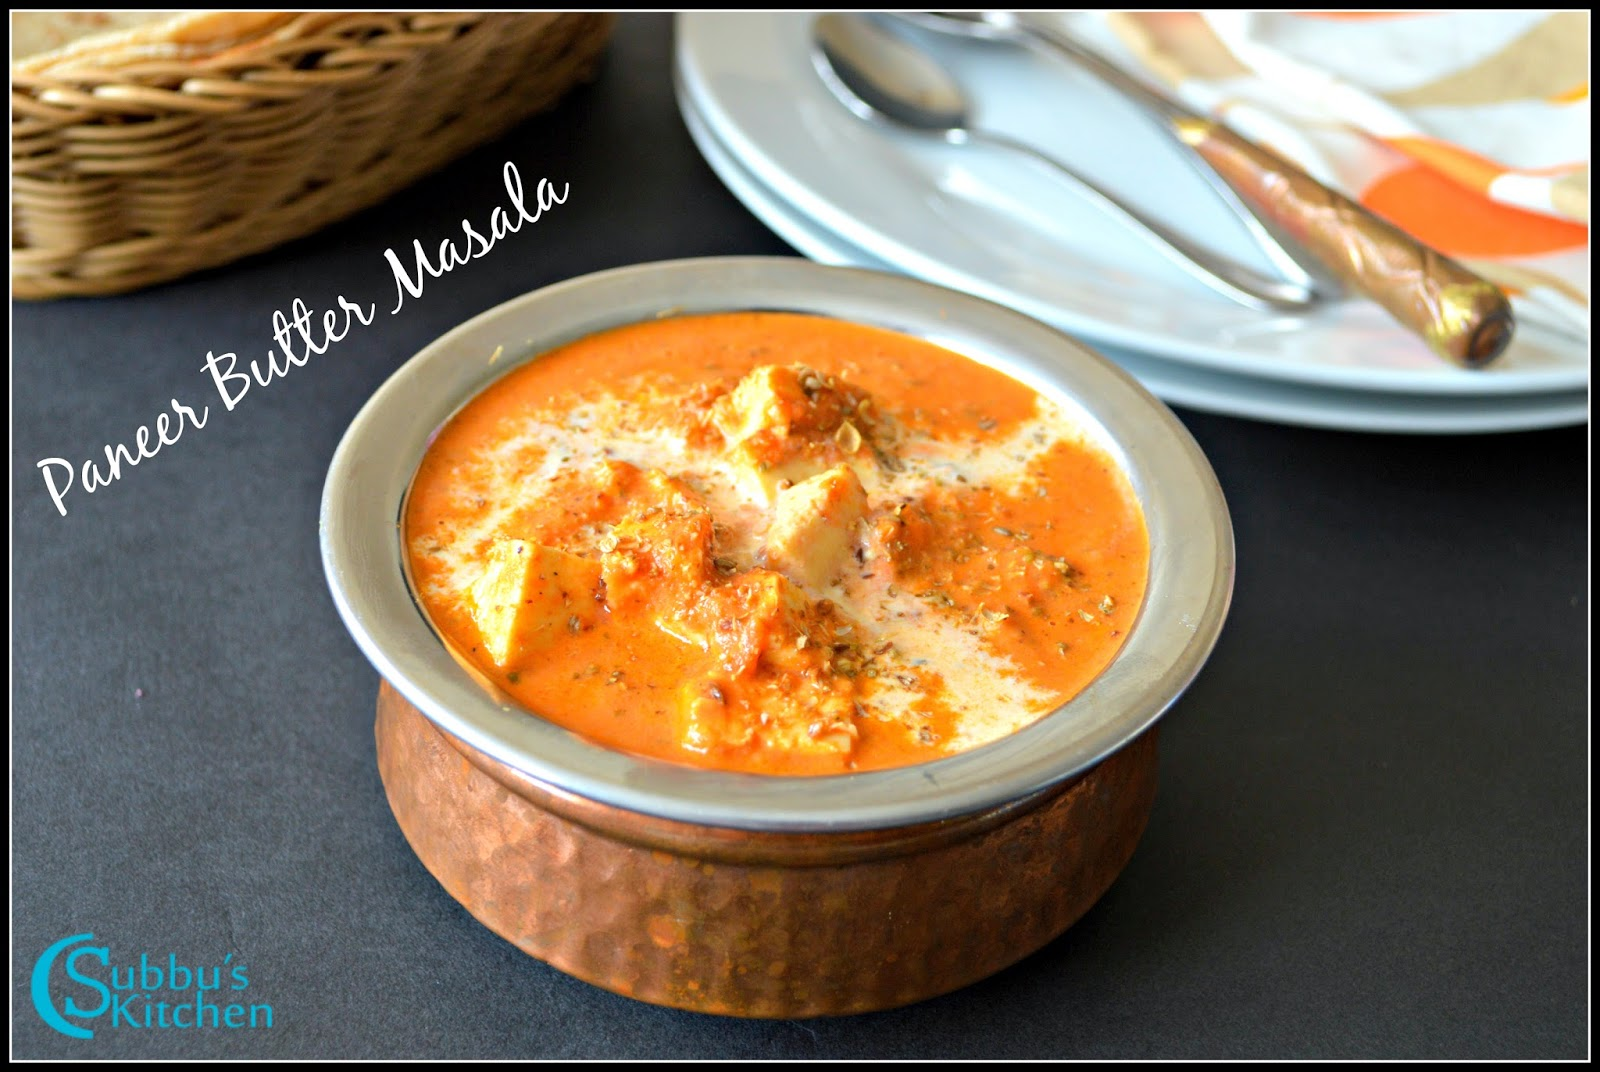 recipe paneer makhani hebbars kitchen 2 - Hebbars Kitchen 2